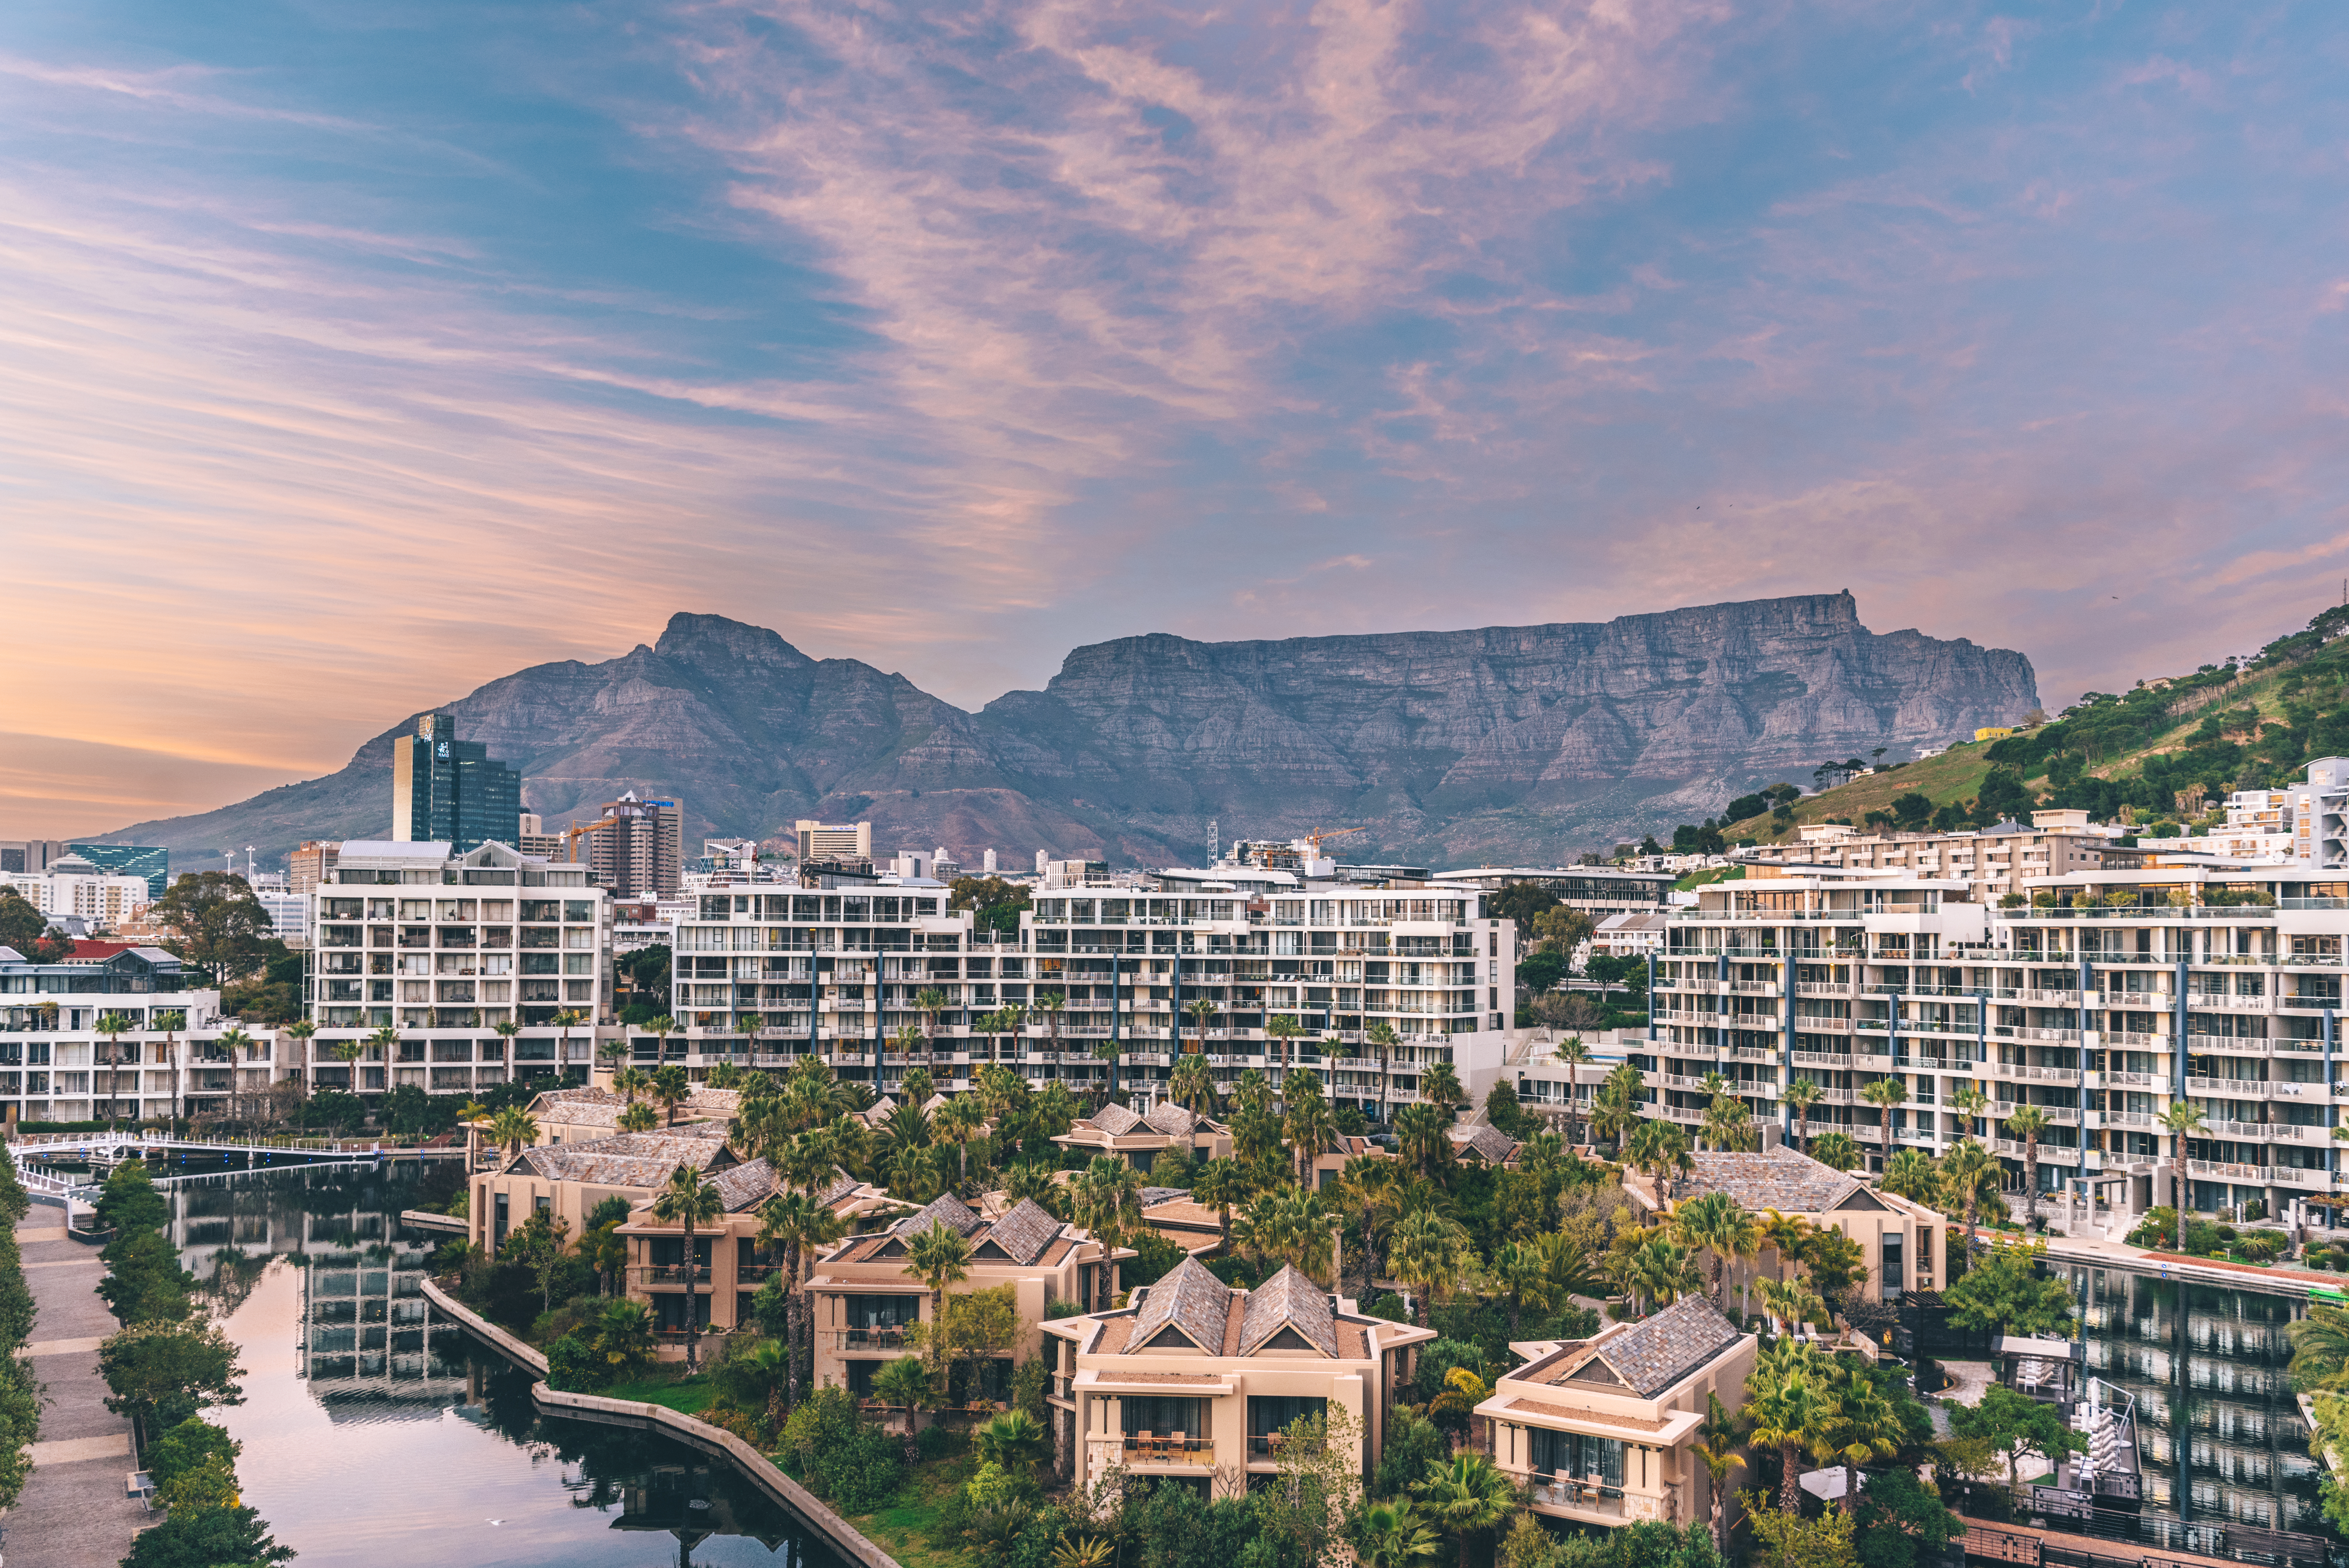 oneonly_capetown_exteriorlandscape_presi